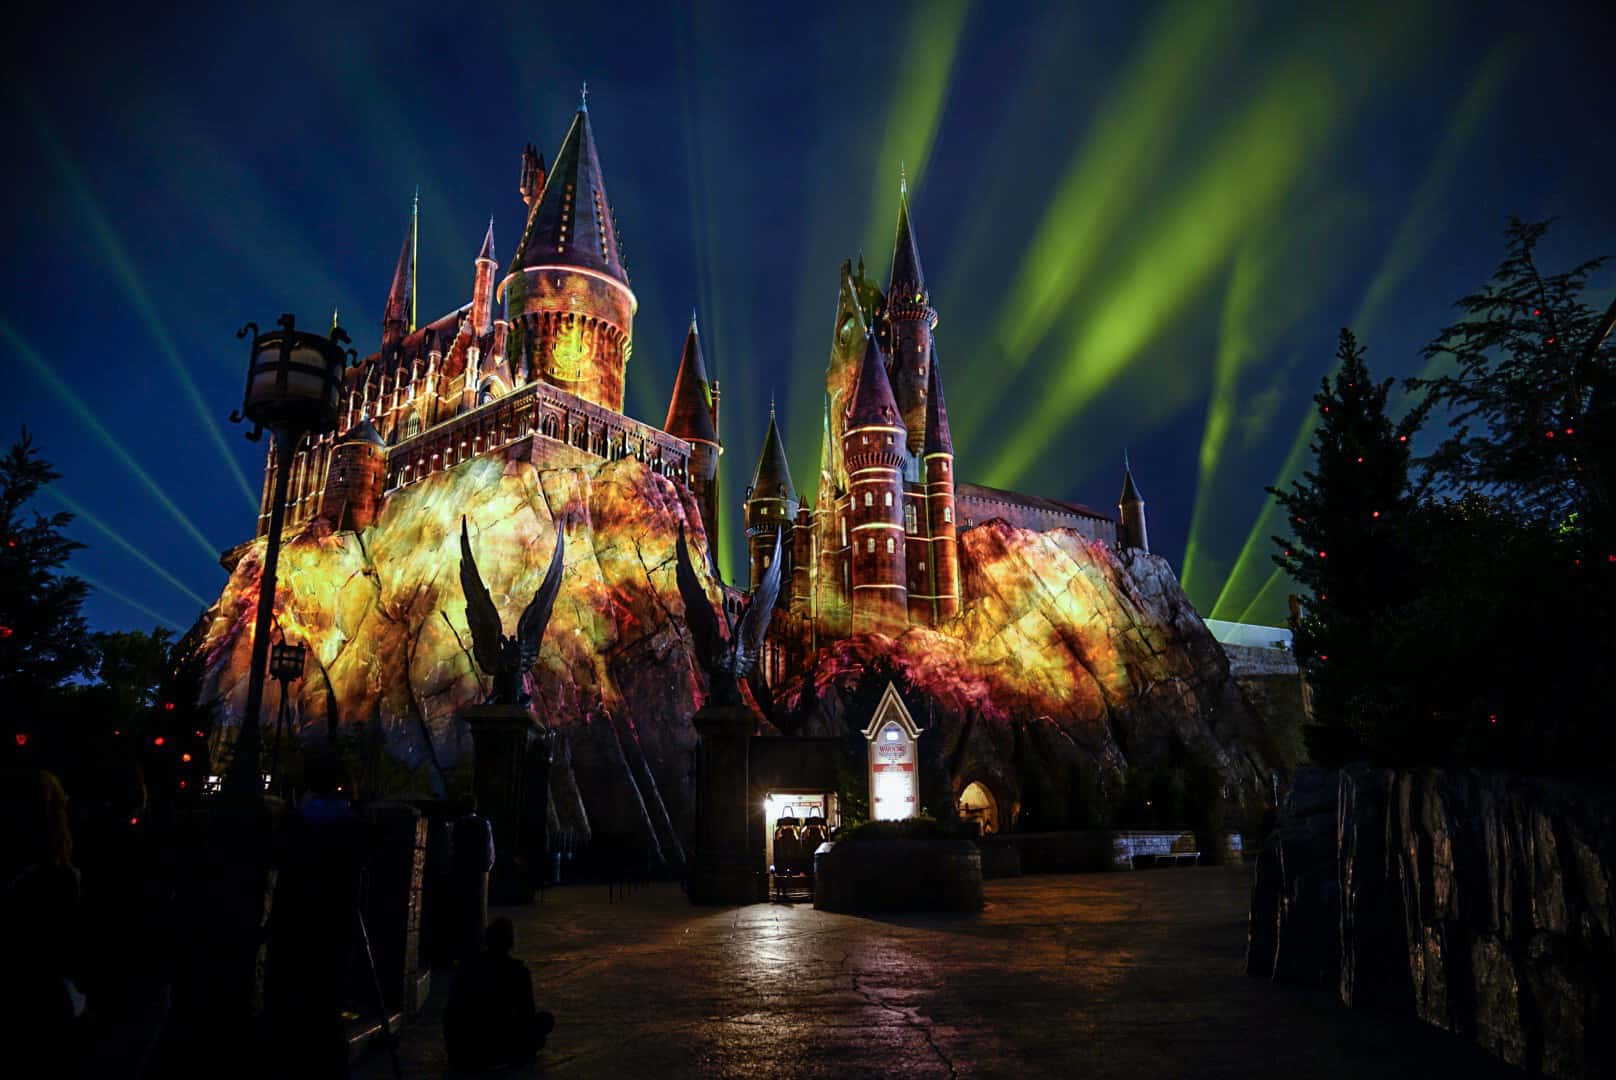 Castelo de Hogwarts no parque Islands of Adventure em Orlando